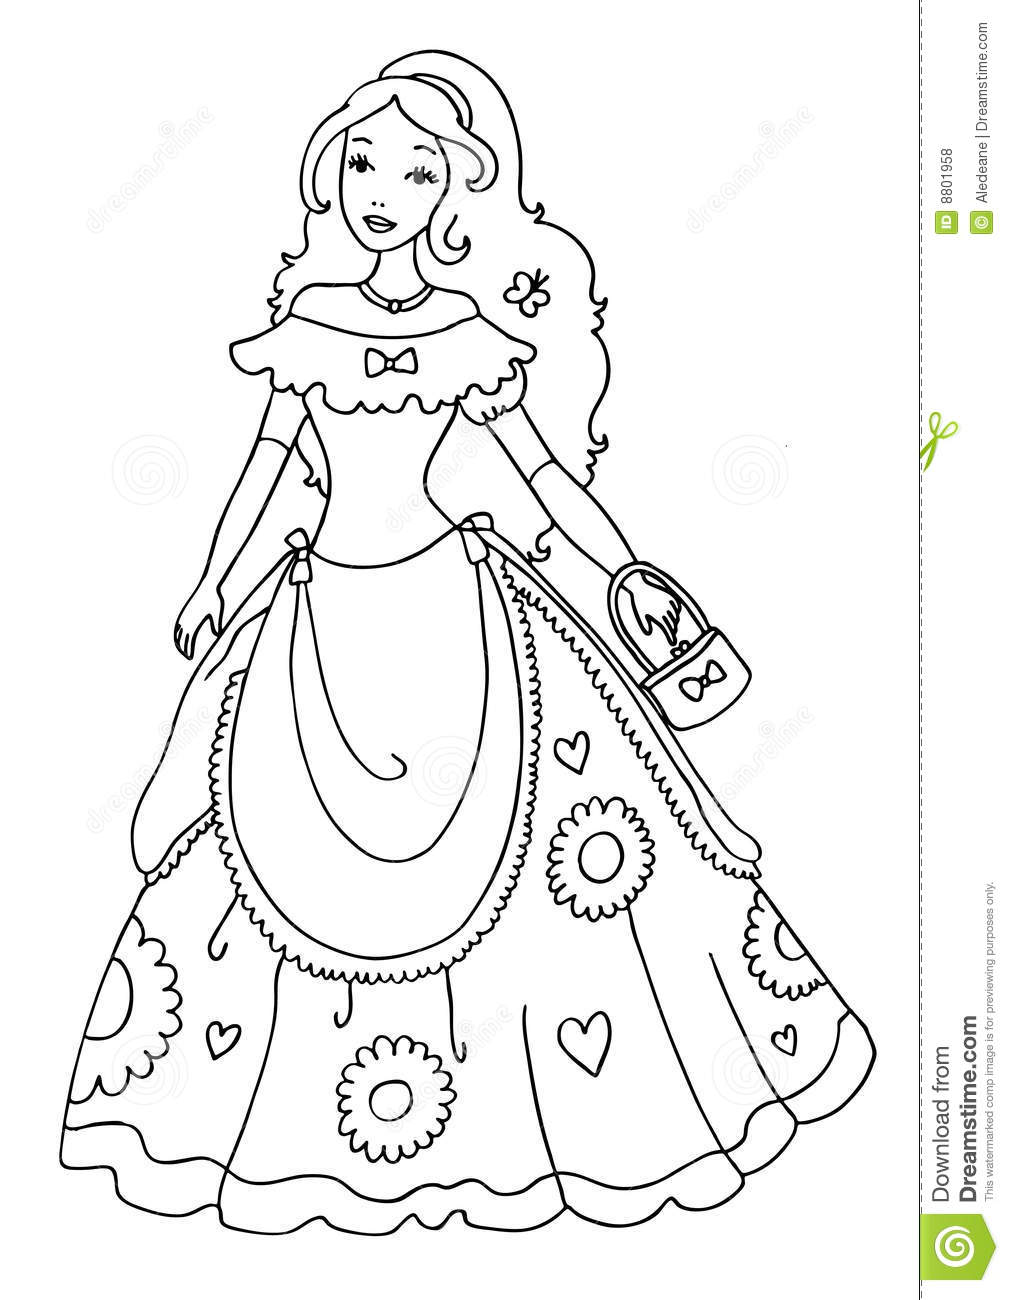 Image Result For Coloring Pages Of Mermaids That Are Fancy Fors